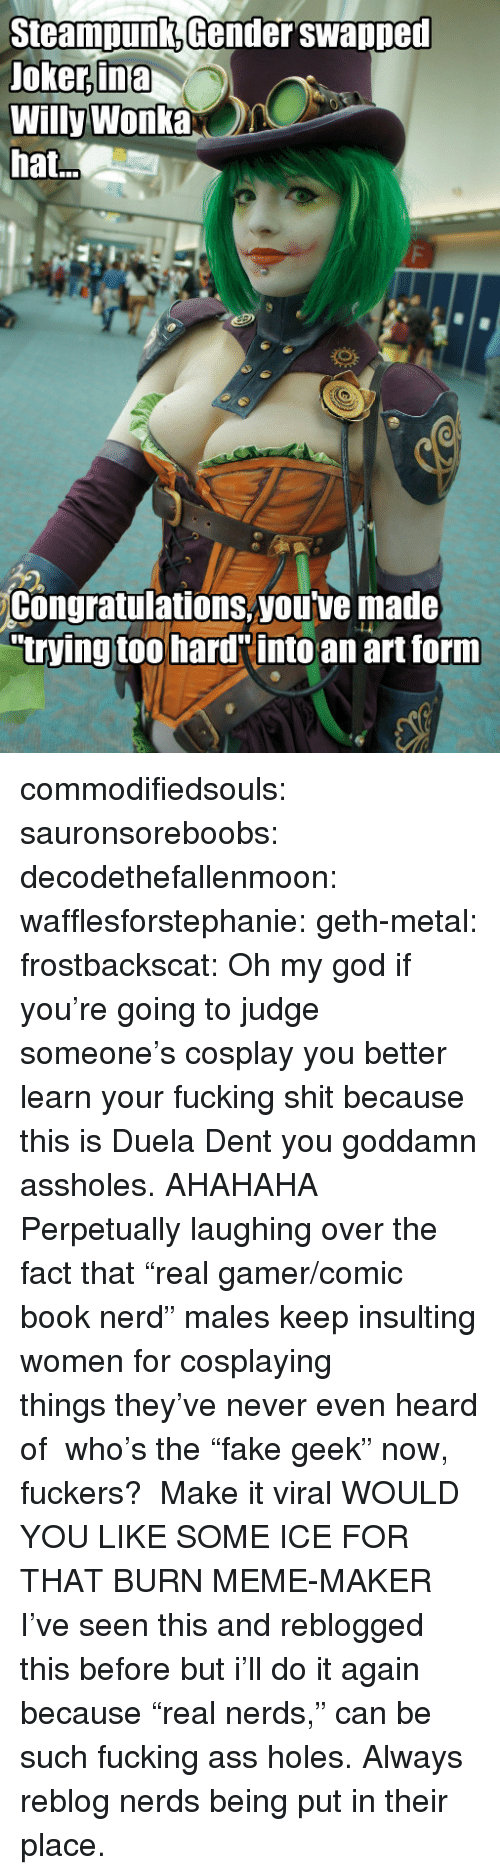 """Ass, Do It Again, and Fucking: SteampunKGender swanpeu  Joker,ina  Willy Wonka  hat  Congratulations,youtve made  trying too hard into an art forn commodifiedsouls:  sauronsoreboobs:  decodethefallenmoon:  wafflesforstephanie:  geth-metal:  frostbackscat:  Oh my god if you're going to judge someone's cosplay you better learn your fucking shit because this is Duela Dent you goddamn assholes.   AHAHAHA Perpetually laughing over the fact that """"real gamer/comic book nerd"""" males keep insulting women for cosplaying thingsthey've never even heard of who's the """"fake geek"""" now, fuckers?  Make it viral  WOULD YOU LIKE SOME ICE FOR THAT BURN MEME-MAKER  I've seen this and reblogged this before but i'll do it again because """"real nerds,"""" can be such fucking ass holes.  Always reblog nerds being put in their place."""